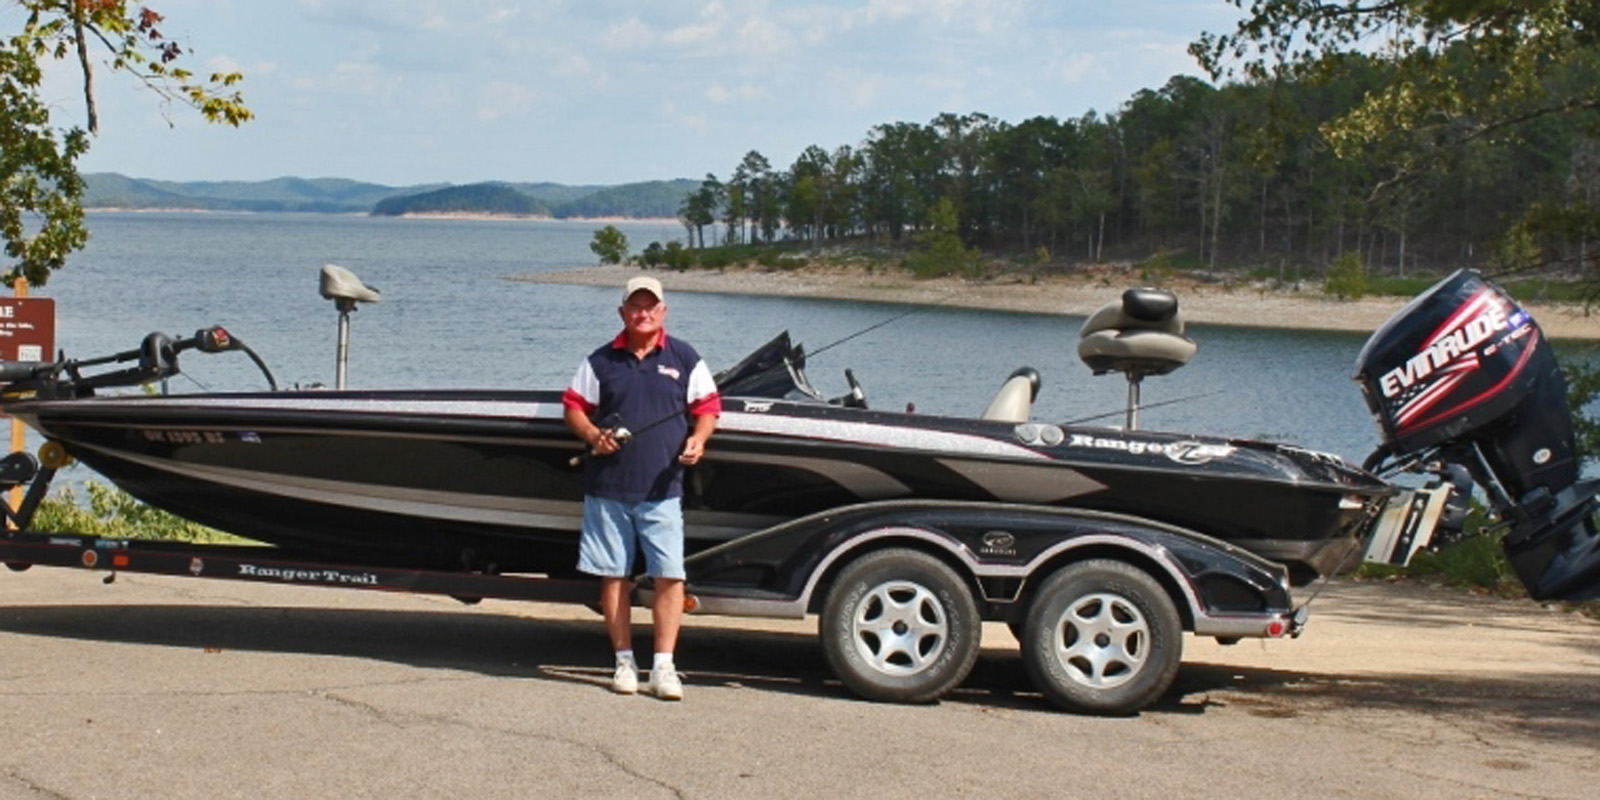 broken bow lake 4 seasons fishing guide service_32.jpg